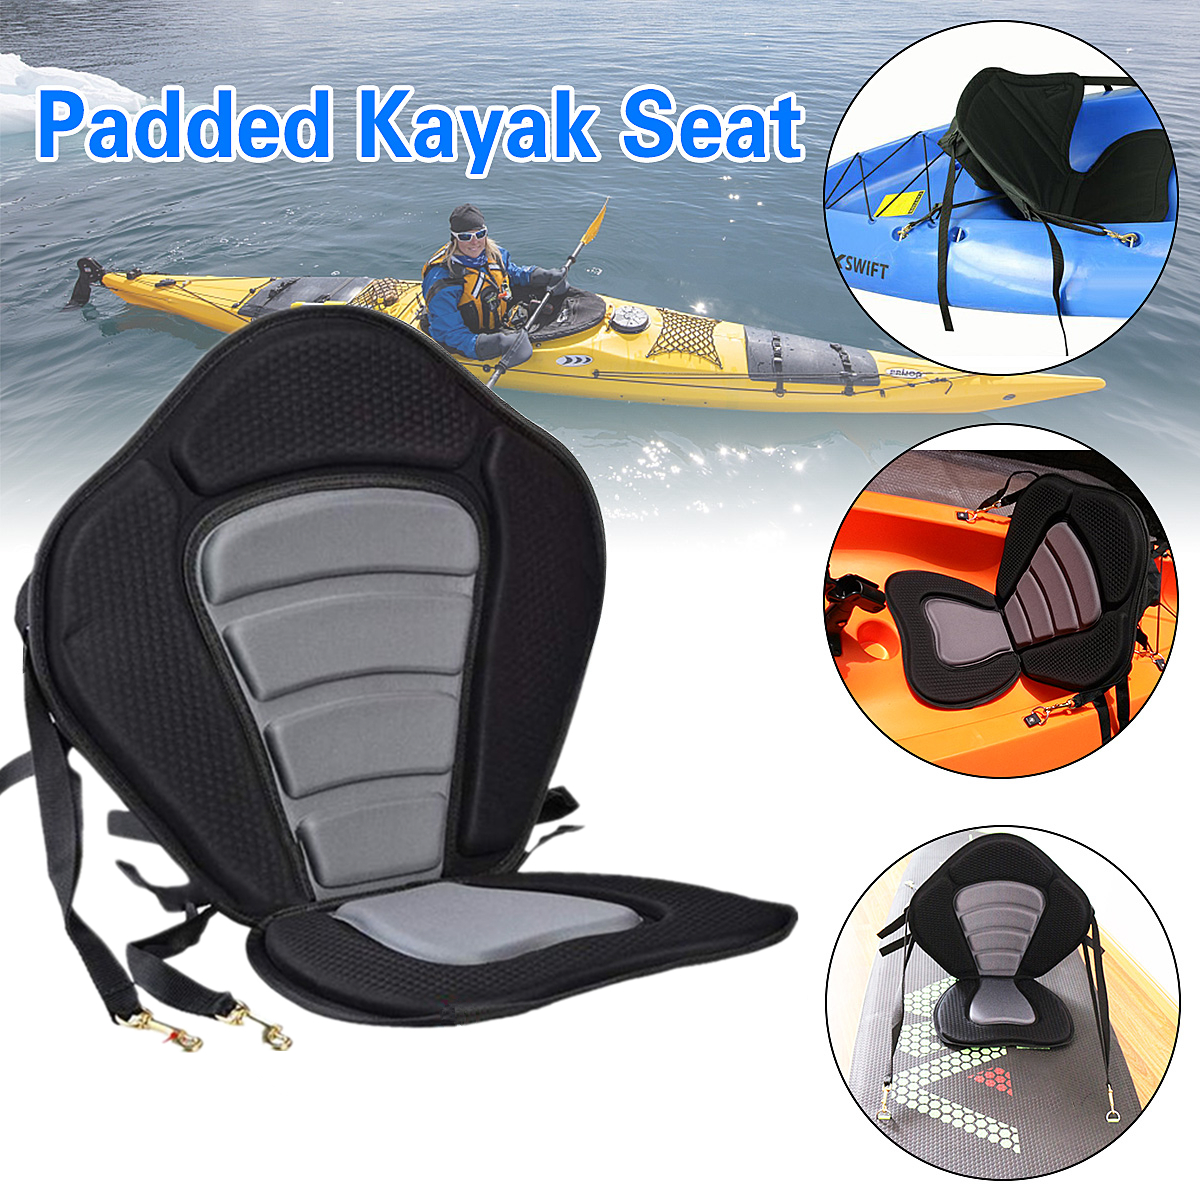 Kayak Cushion Deluxe Padded Kayak / Boat Seat Portable Soft Antiskid Padded Base Adjusta ...